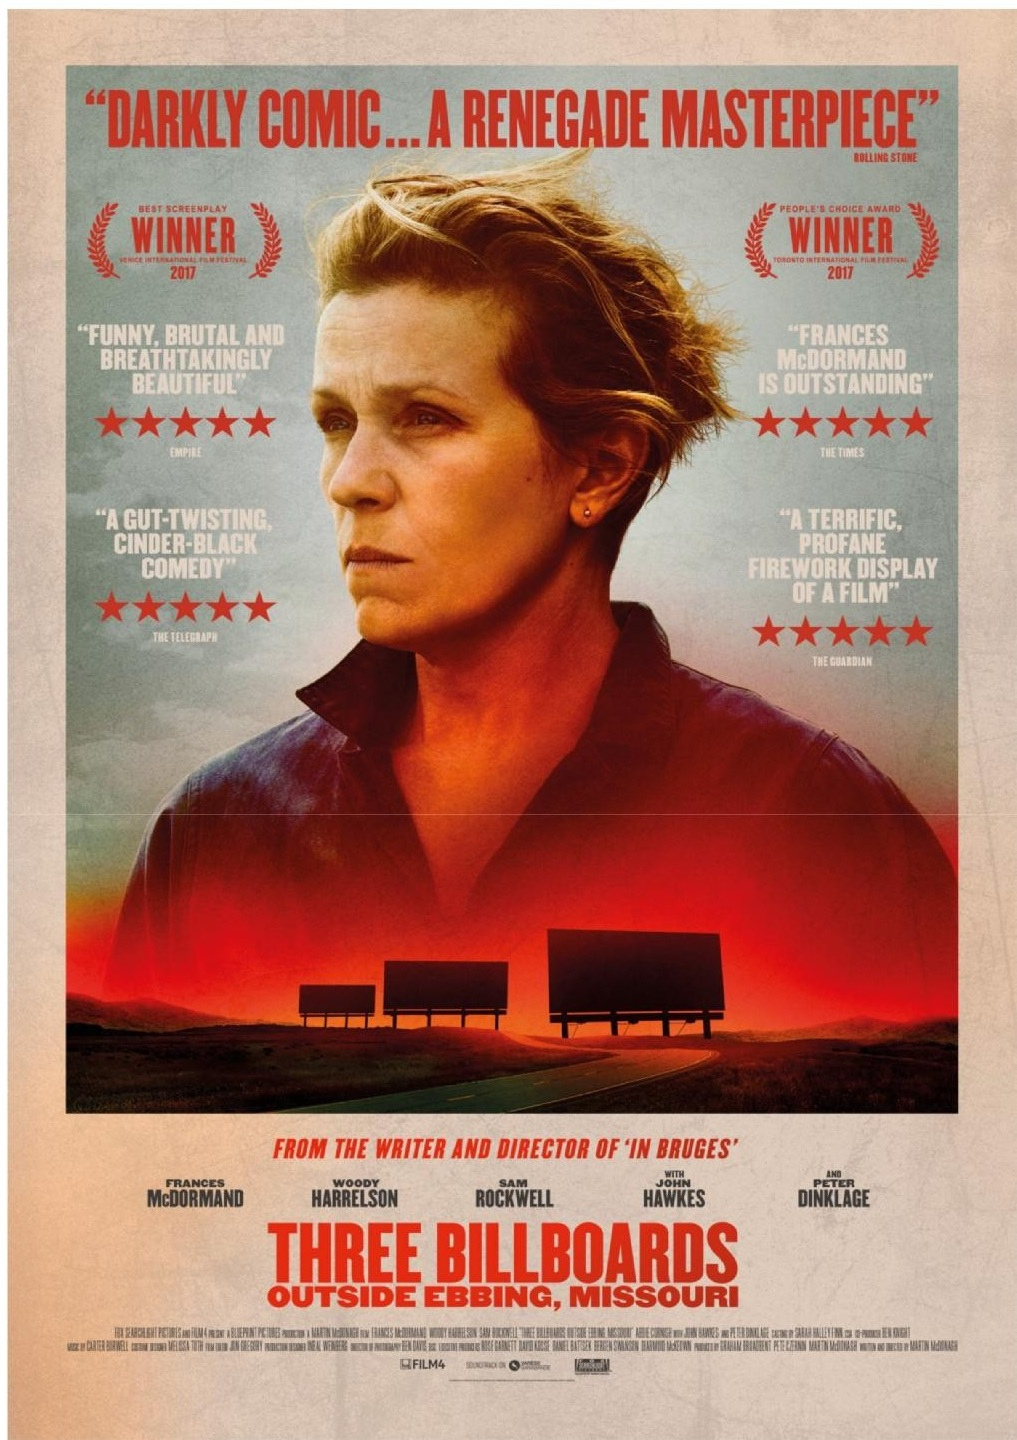 Three Billboards outside Ebbing, Missouri (2017) - Directed by: Martin McDonaghStarring: Frances McDormand, Woody Harrelson, Sam Rockwell, Caleb Landry Jones, Abbie Cornish, Lucas Hedges, Peter Dinklage, John Hawkes, Samara Weaving, Kathryn NewtonRated: R for Violence, Language Throughout, and Some Sexual ReferencesRunning Time: 1 h 55 mTMM Score: 5 stars out of 5STRENGTHS: Writing, Characters, Acting, UnconventionalityWEAKNESSES: -